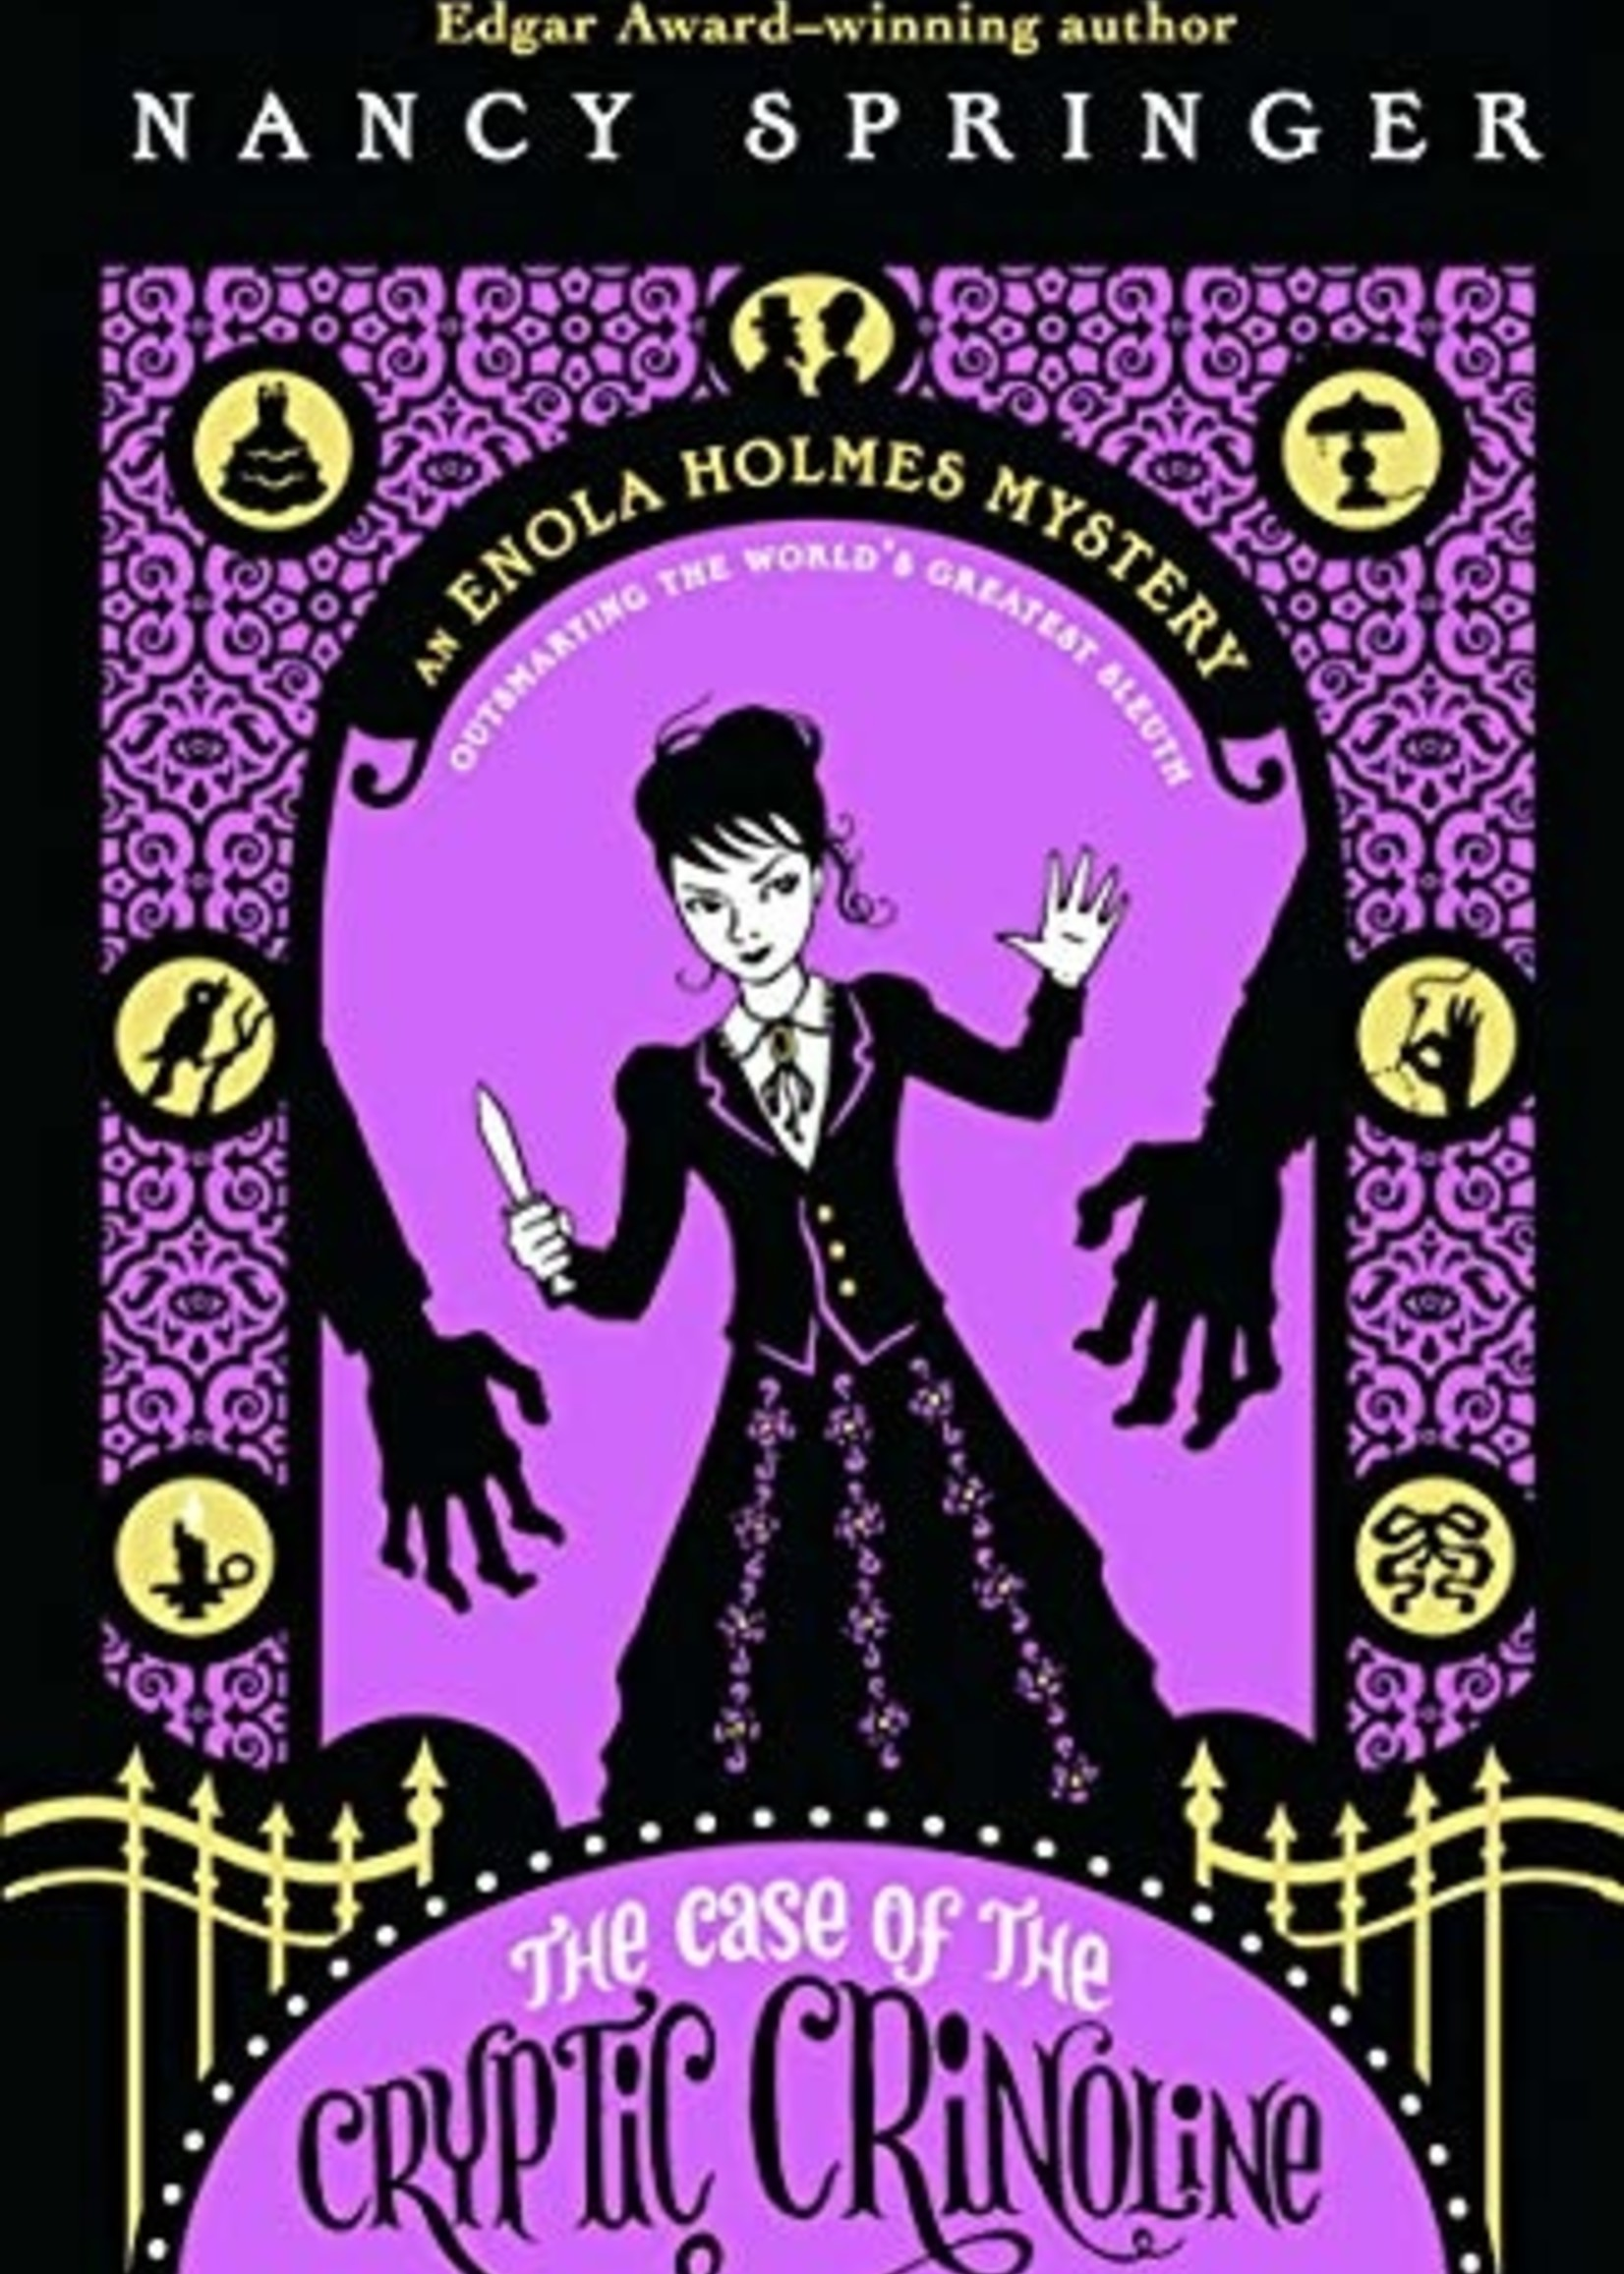 Enola Holmes Mystery #05, The Case of the Cryptic Crinoline - Paperback